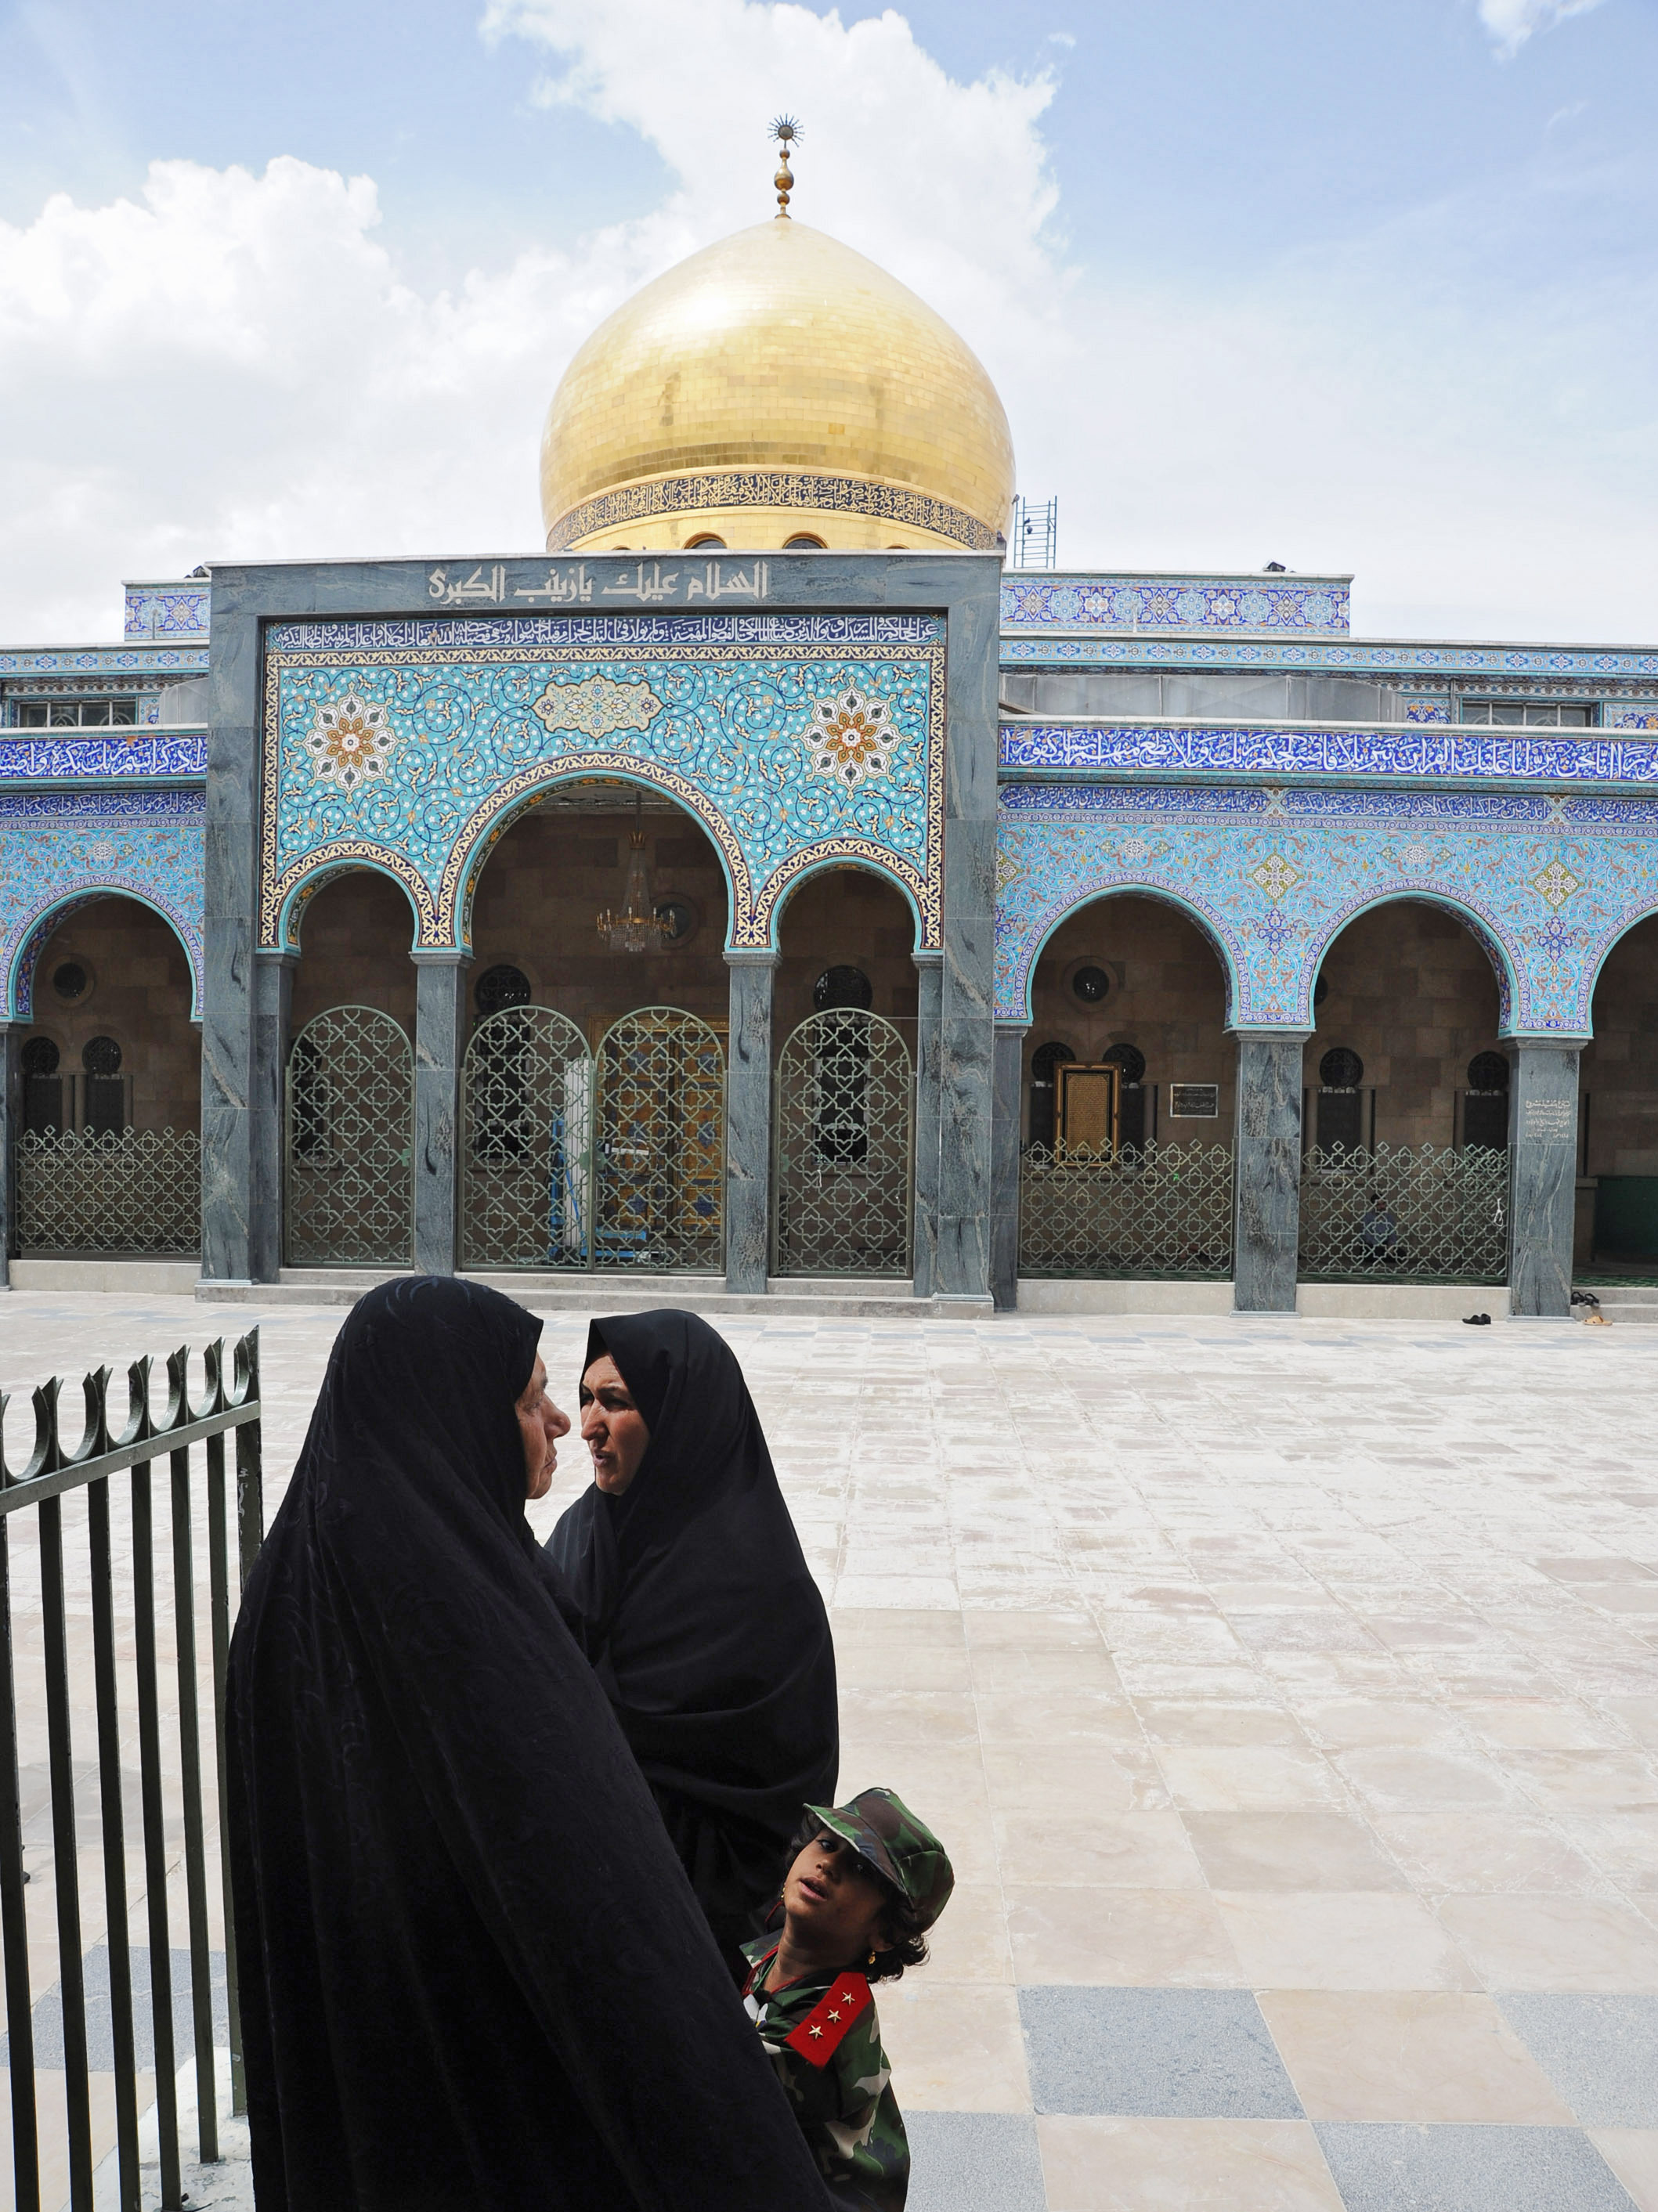 Syria's Civil War: The View From A Damascus Shrine